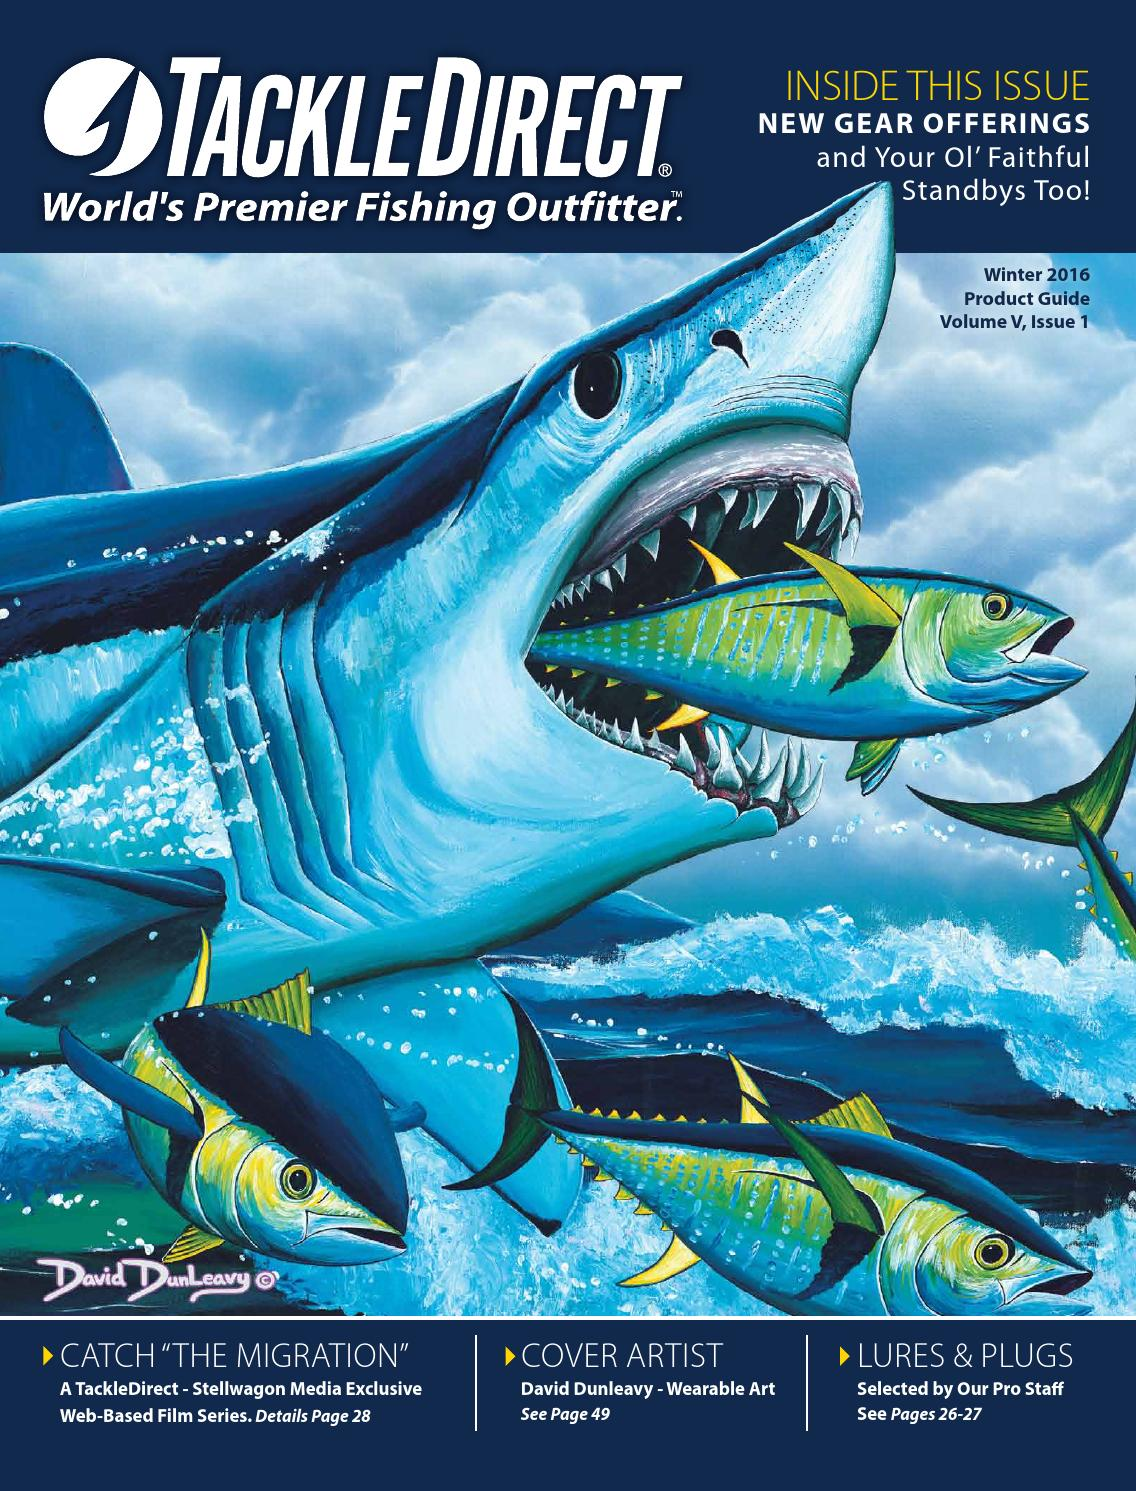 e5284a17859 TackleDirect 2016 Winter Product Guide by TackleDirect - issuu